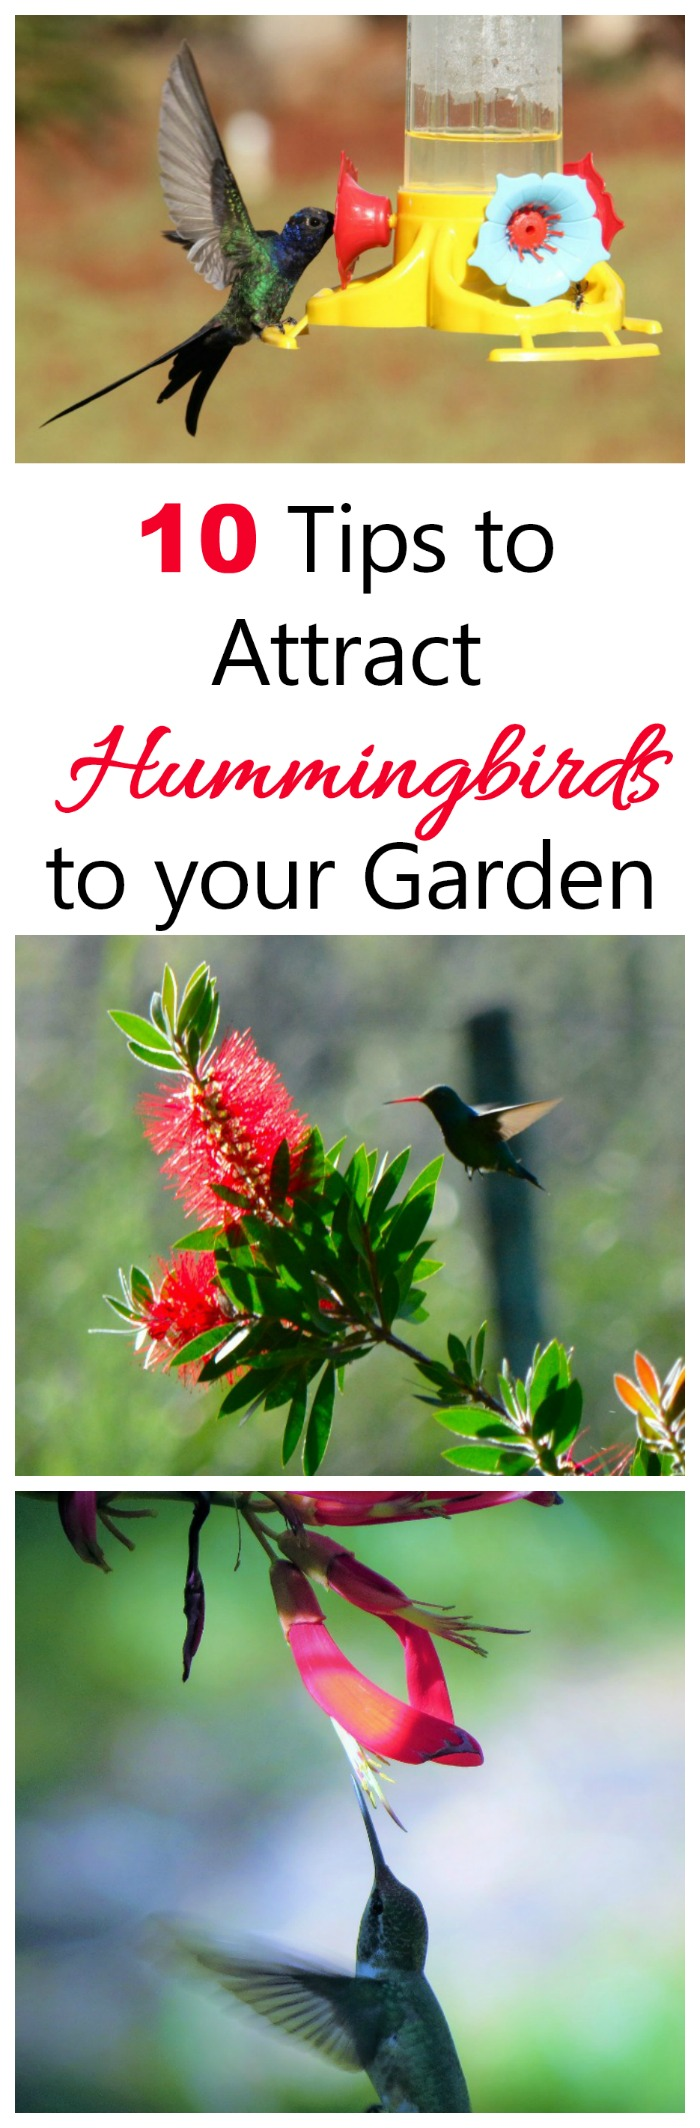 Put These 10 Tips To Use To Attract Hummingbirds To Your Yard And Keep Them  Coming